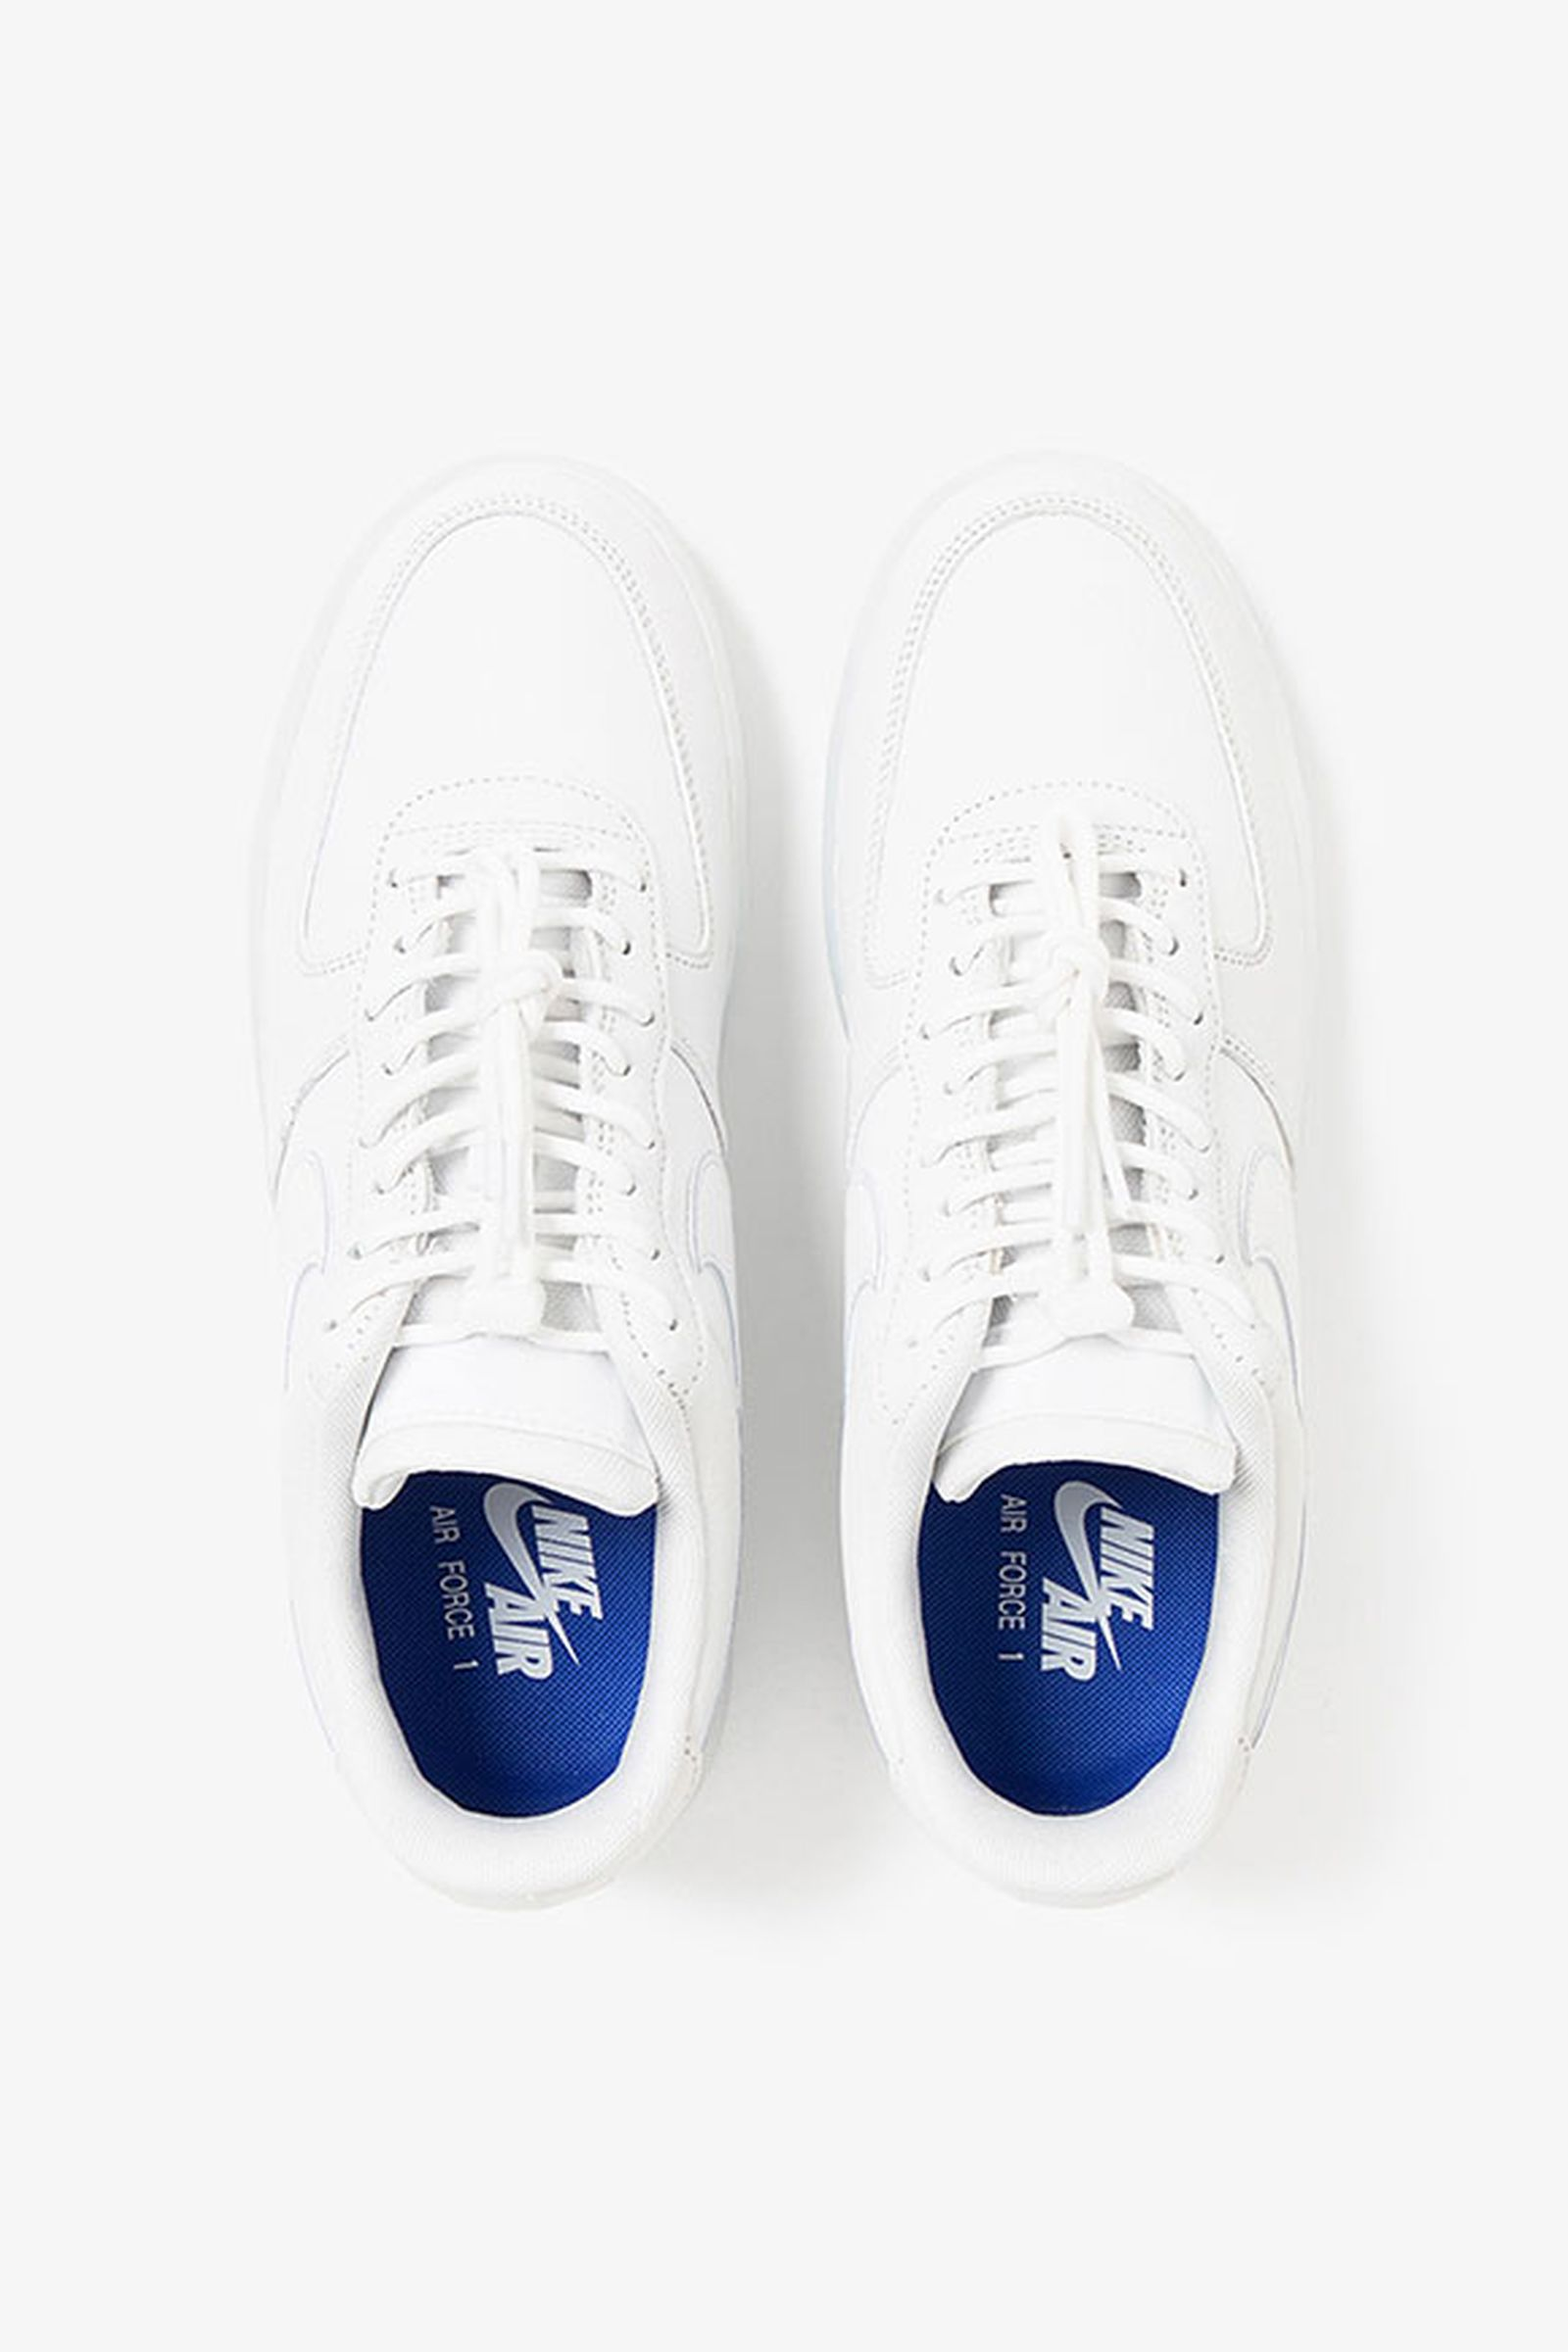 nike-air-force-1-gore-tex-white-release-date-price-01